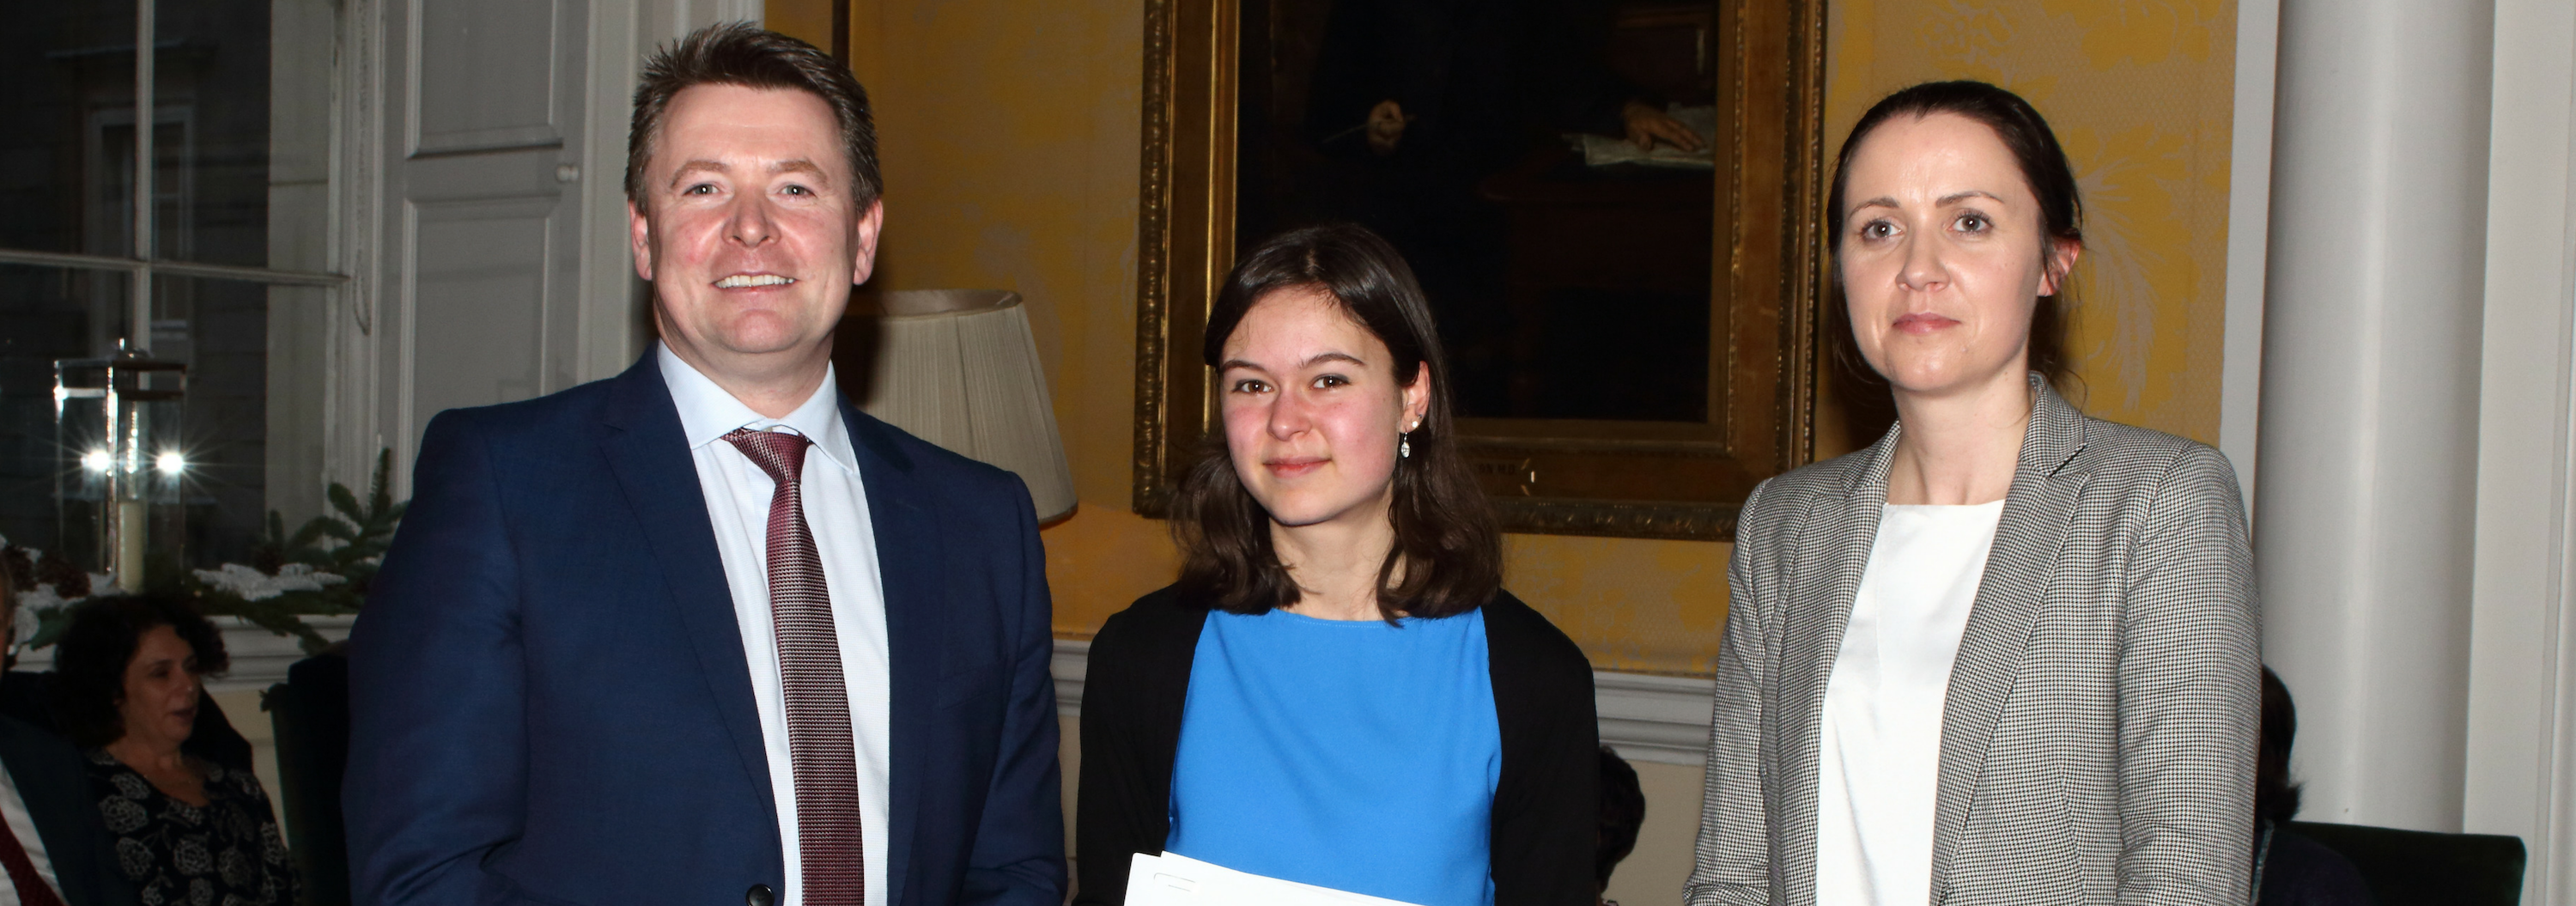 Trinity Pharmacy School Prize Giving and Industry Networking Event December 2018